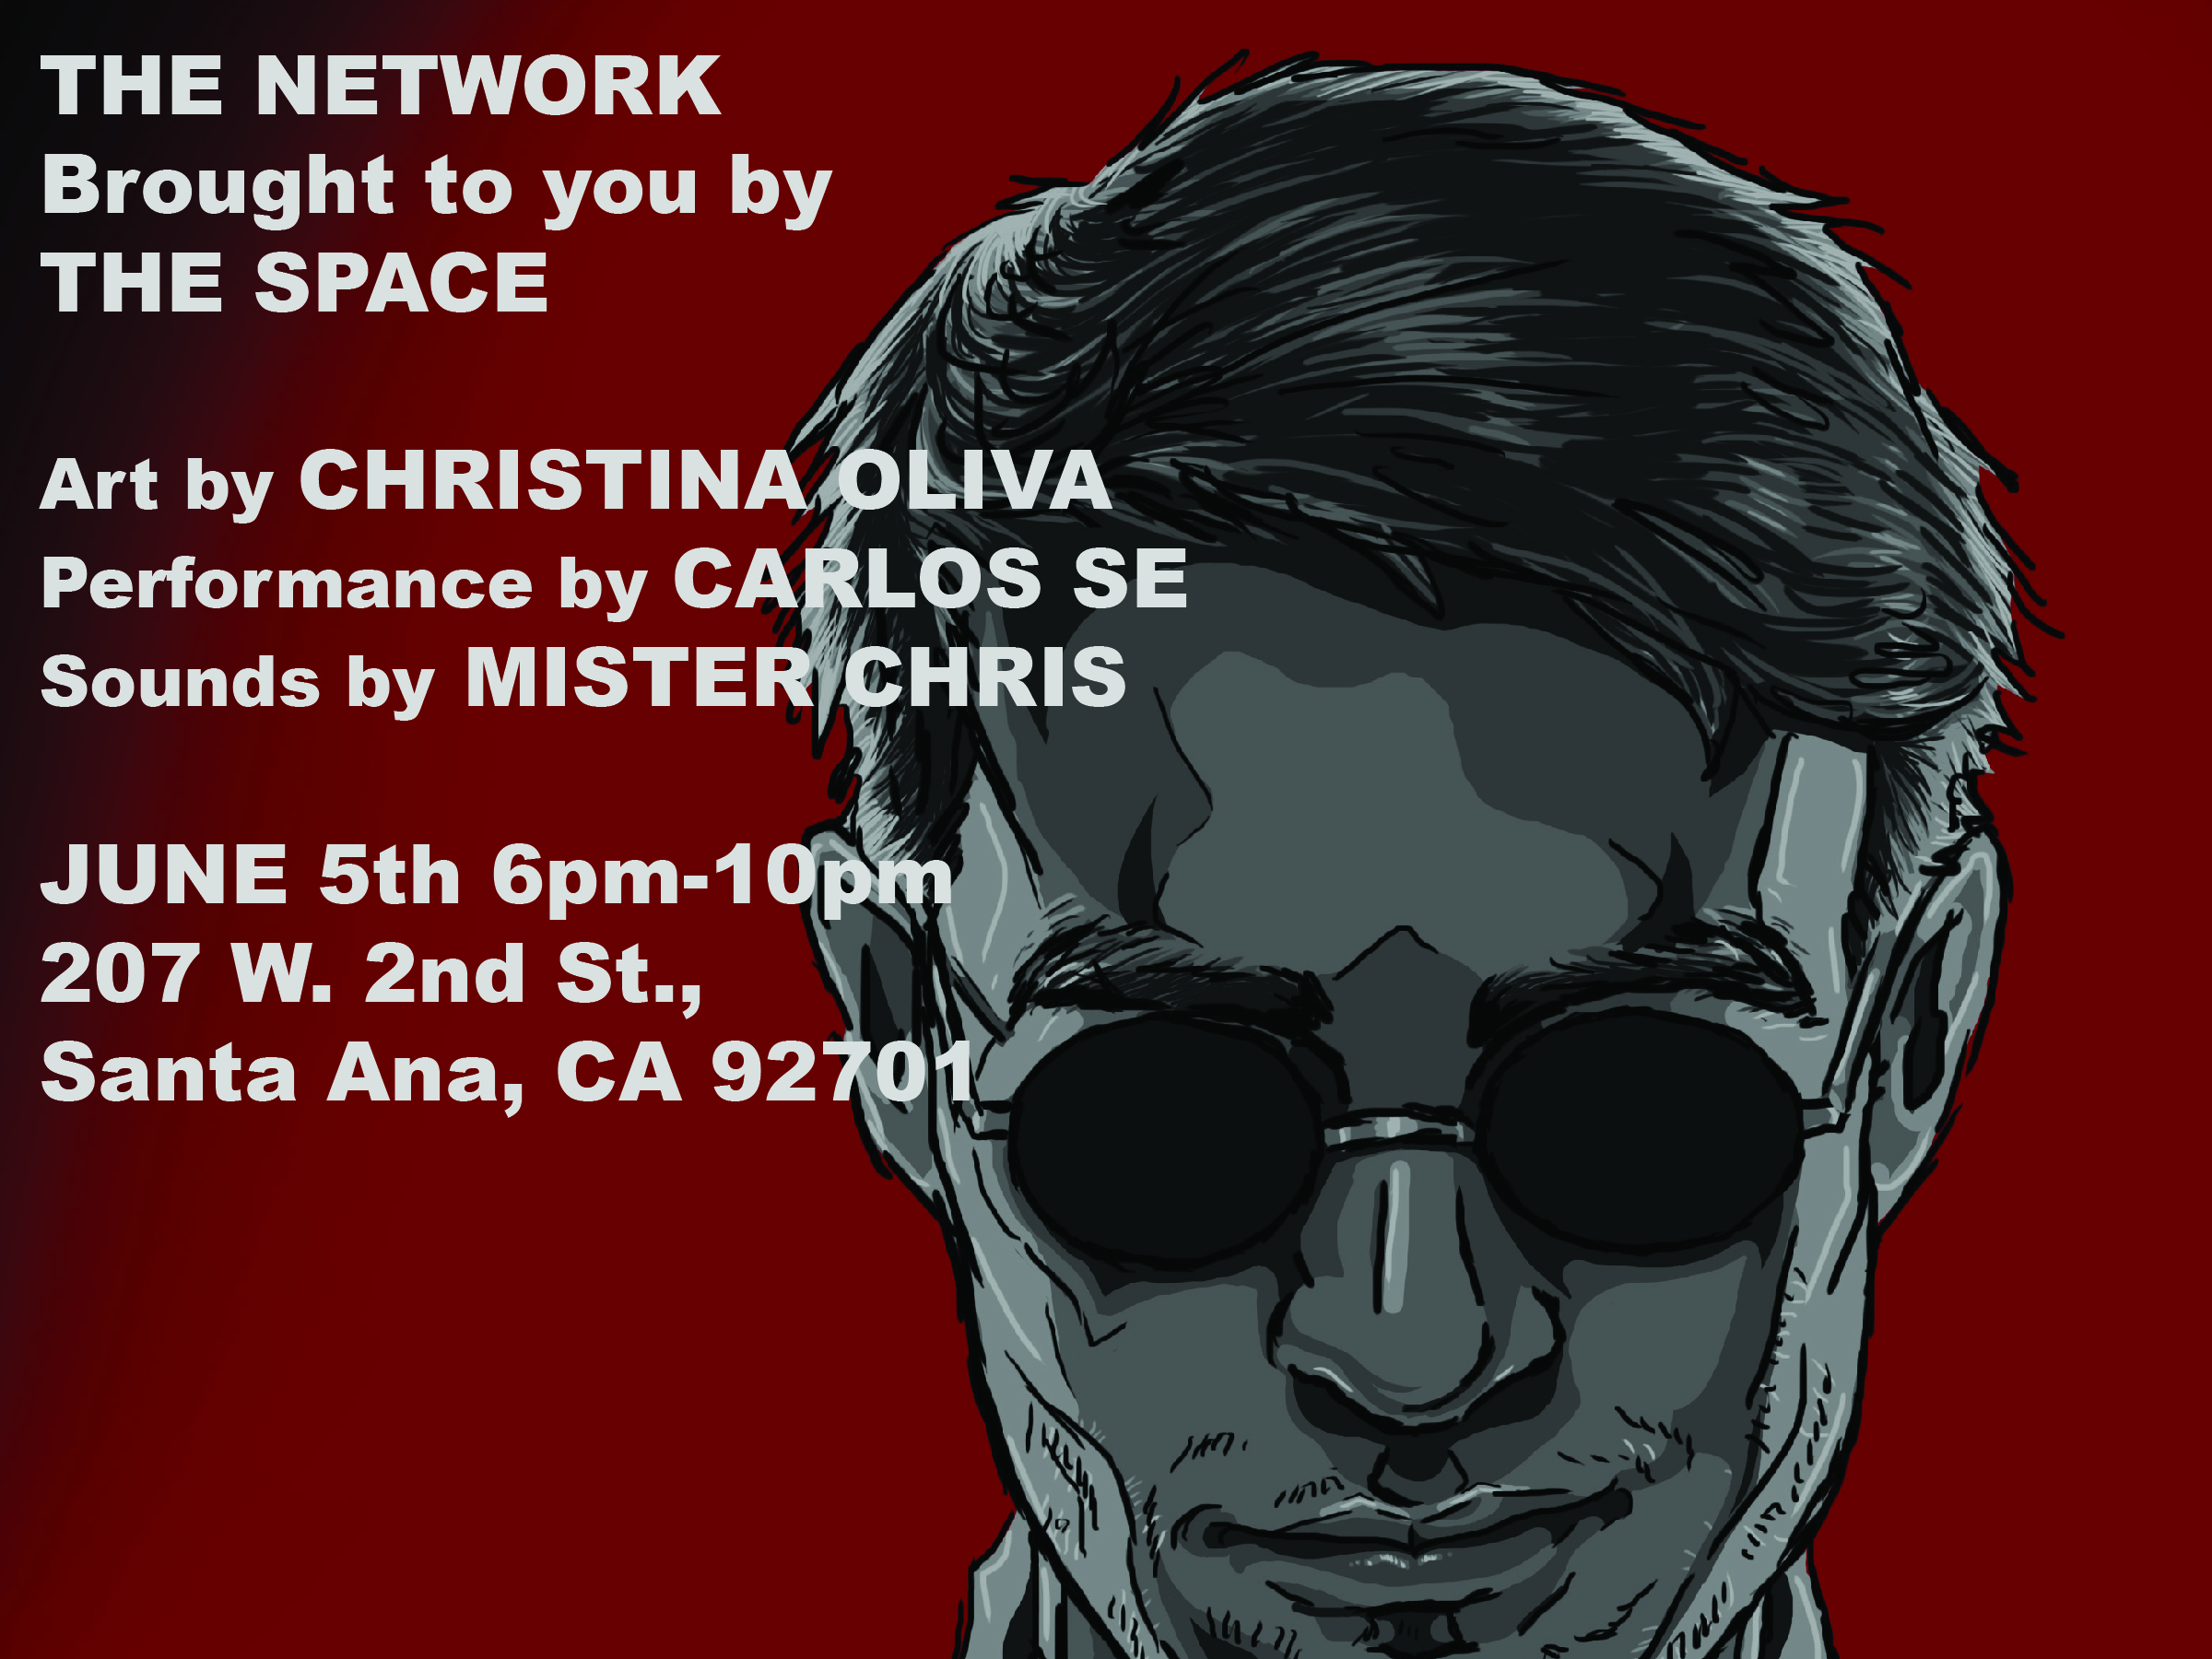 Monday June 5th 2017, 6pm to 10pm, performances food and drinks, meet the artist and get signed prints.